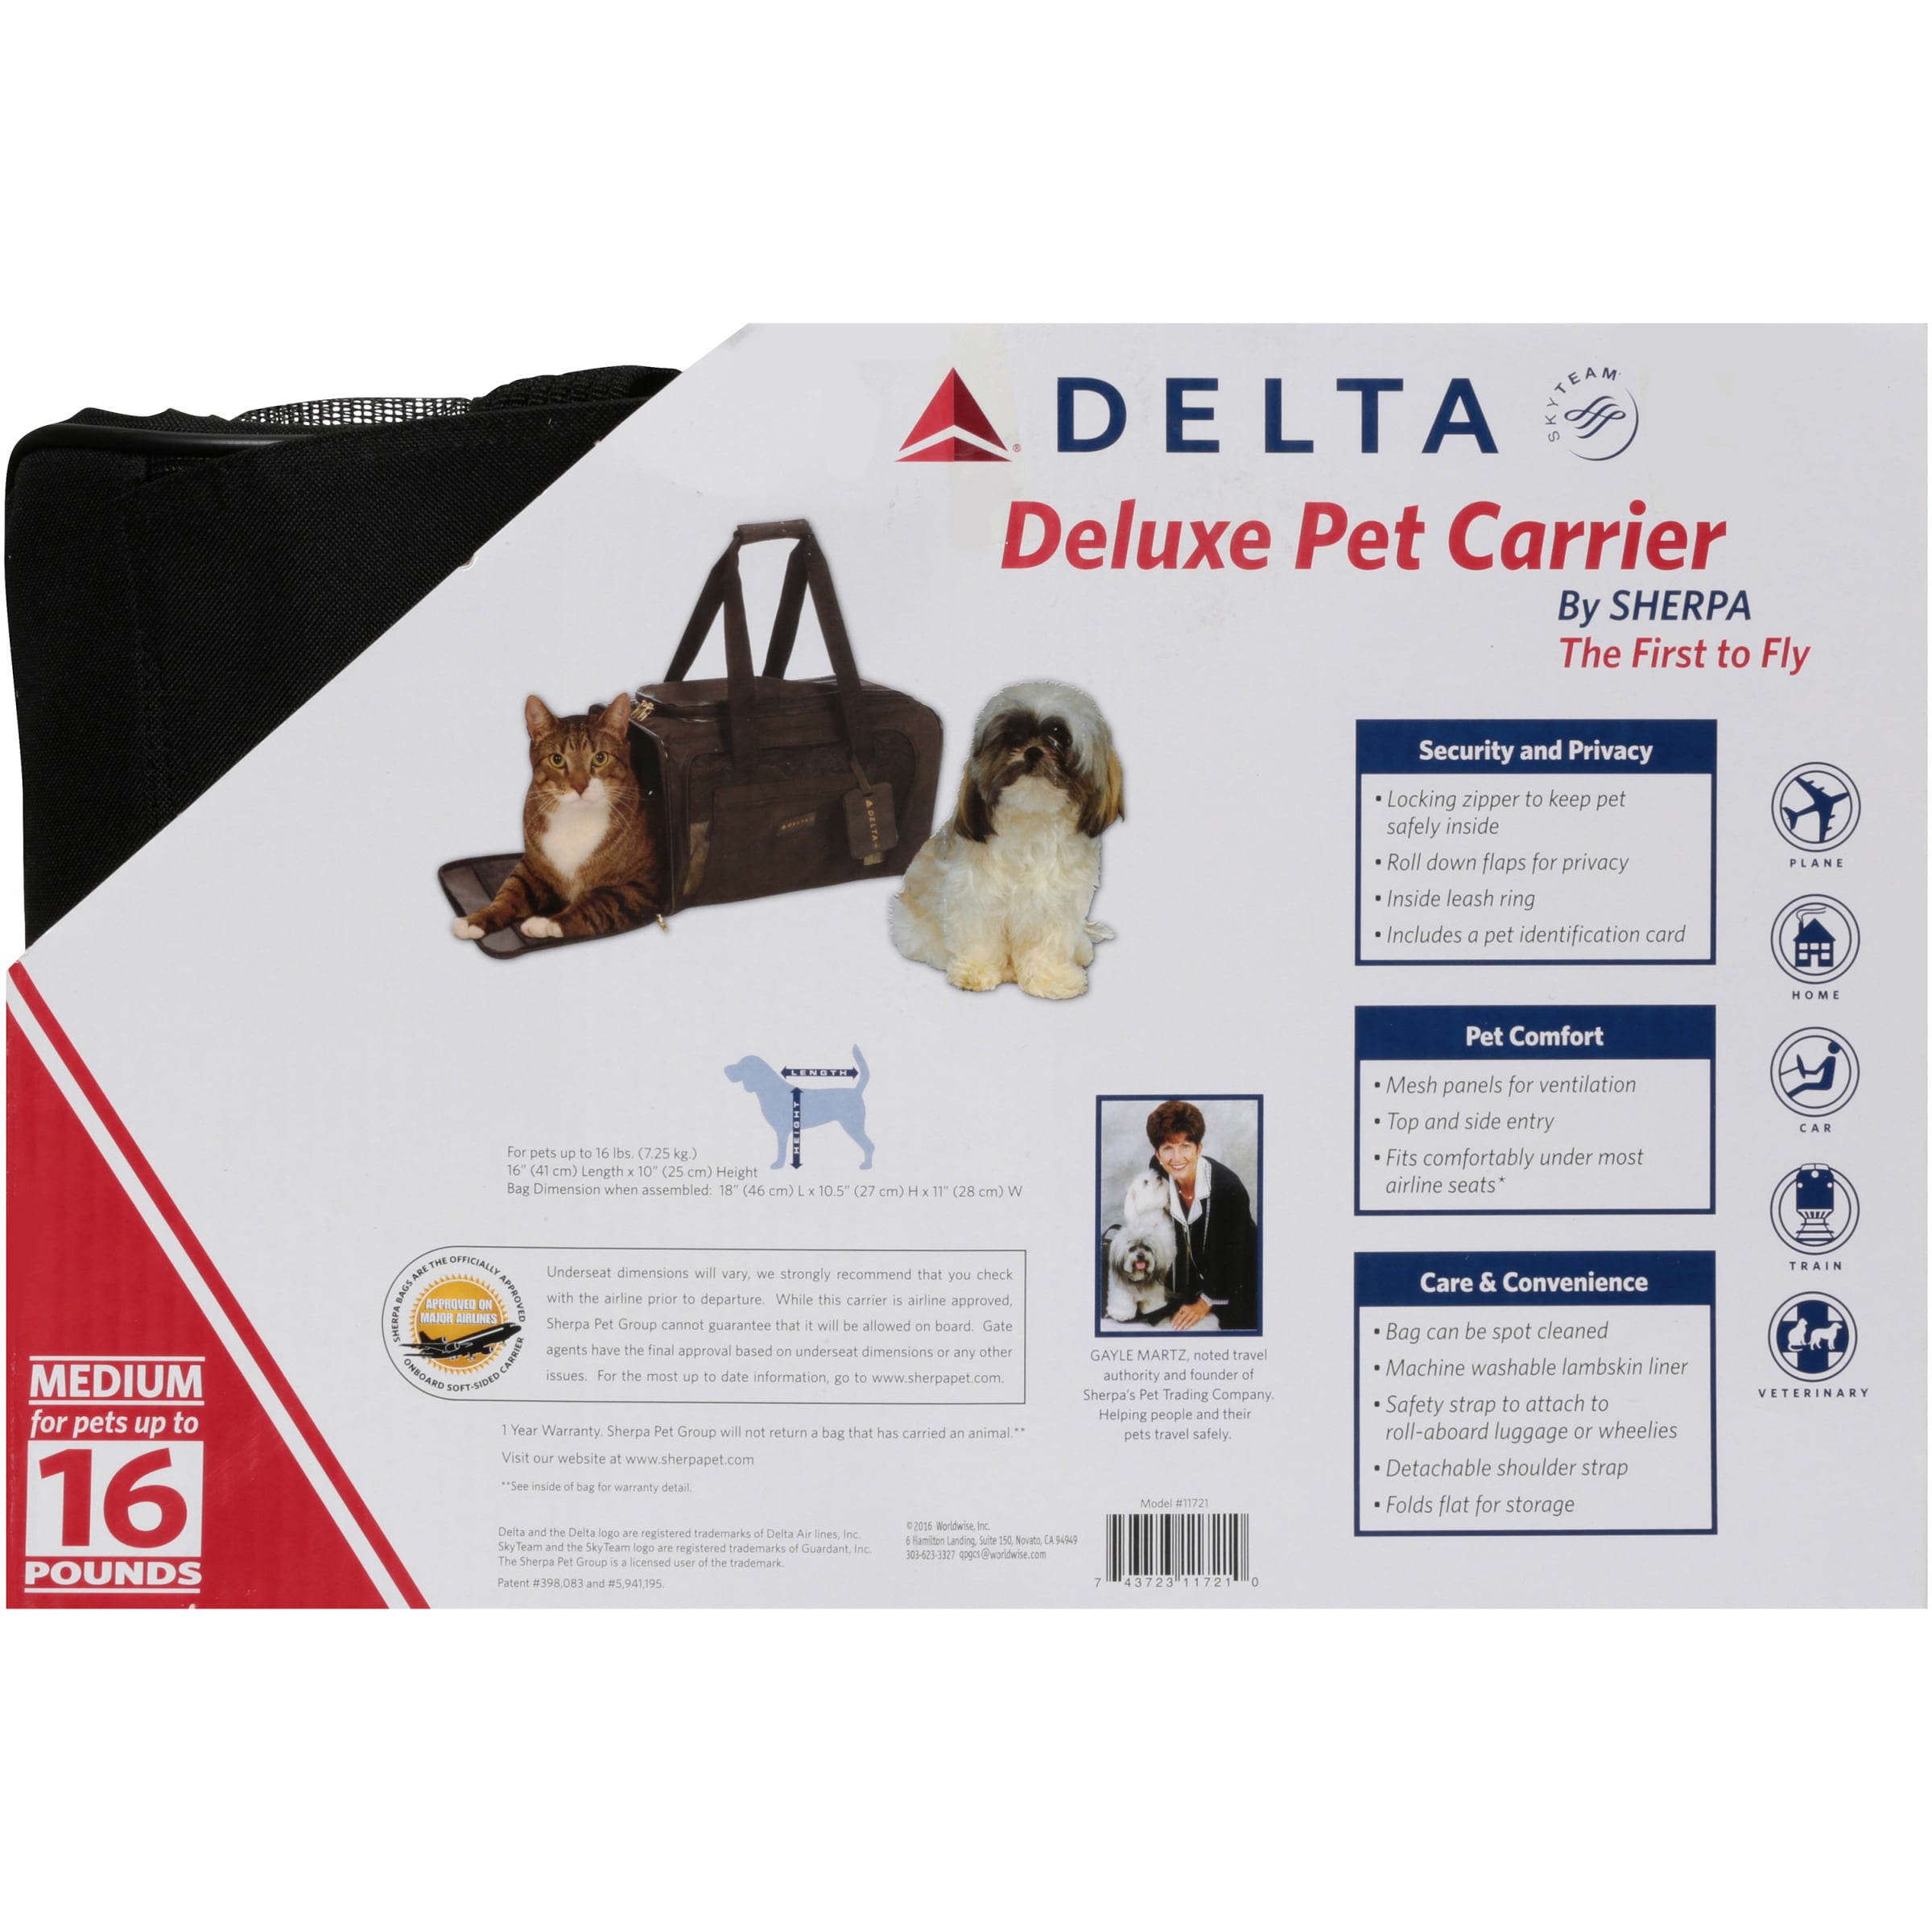 f66b93b331 Sherpa Delta Black Portable Airlines Pet Carrier Medium Storage Carrier nEW